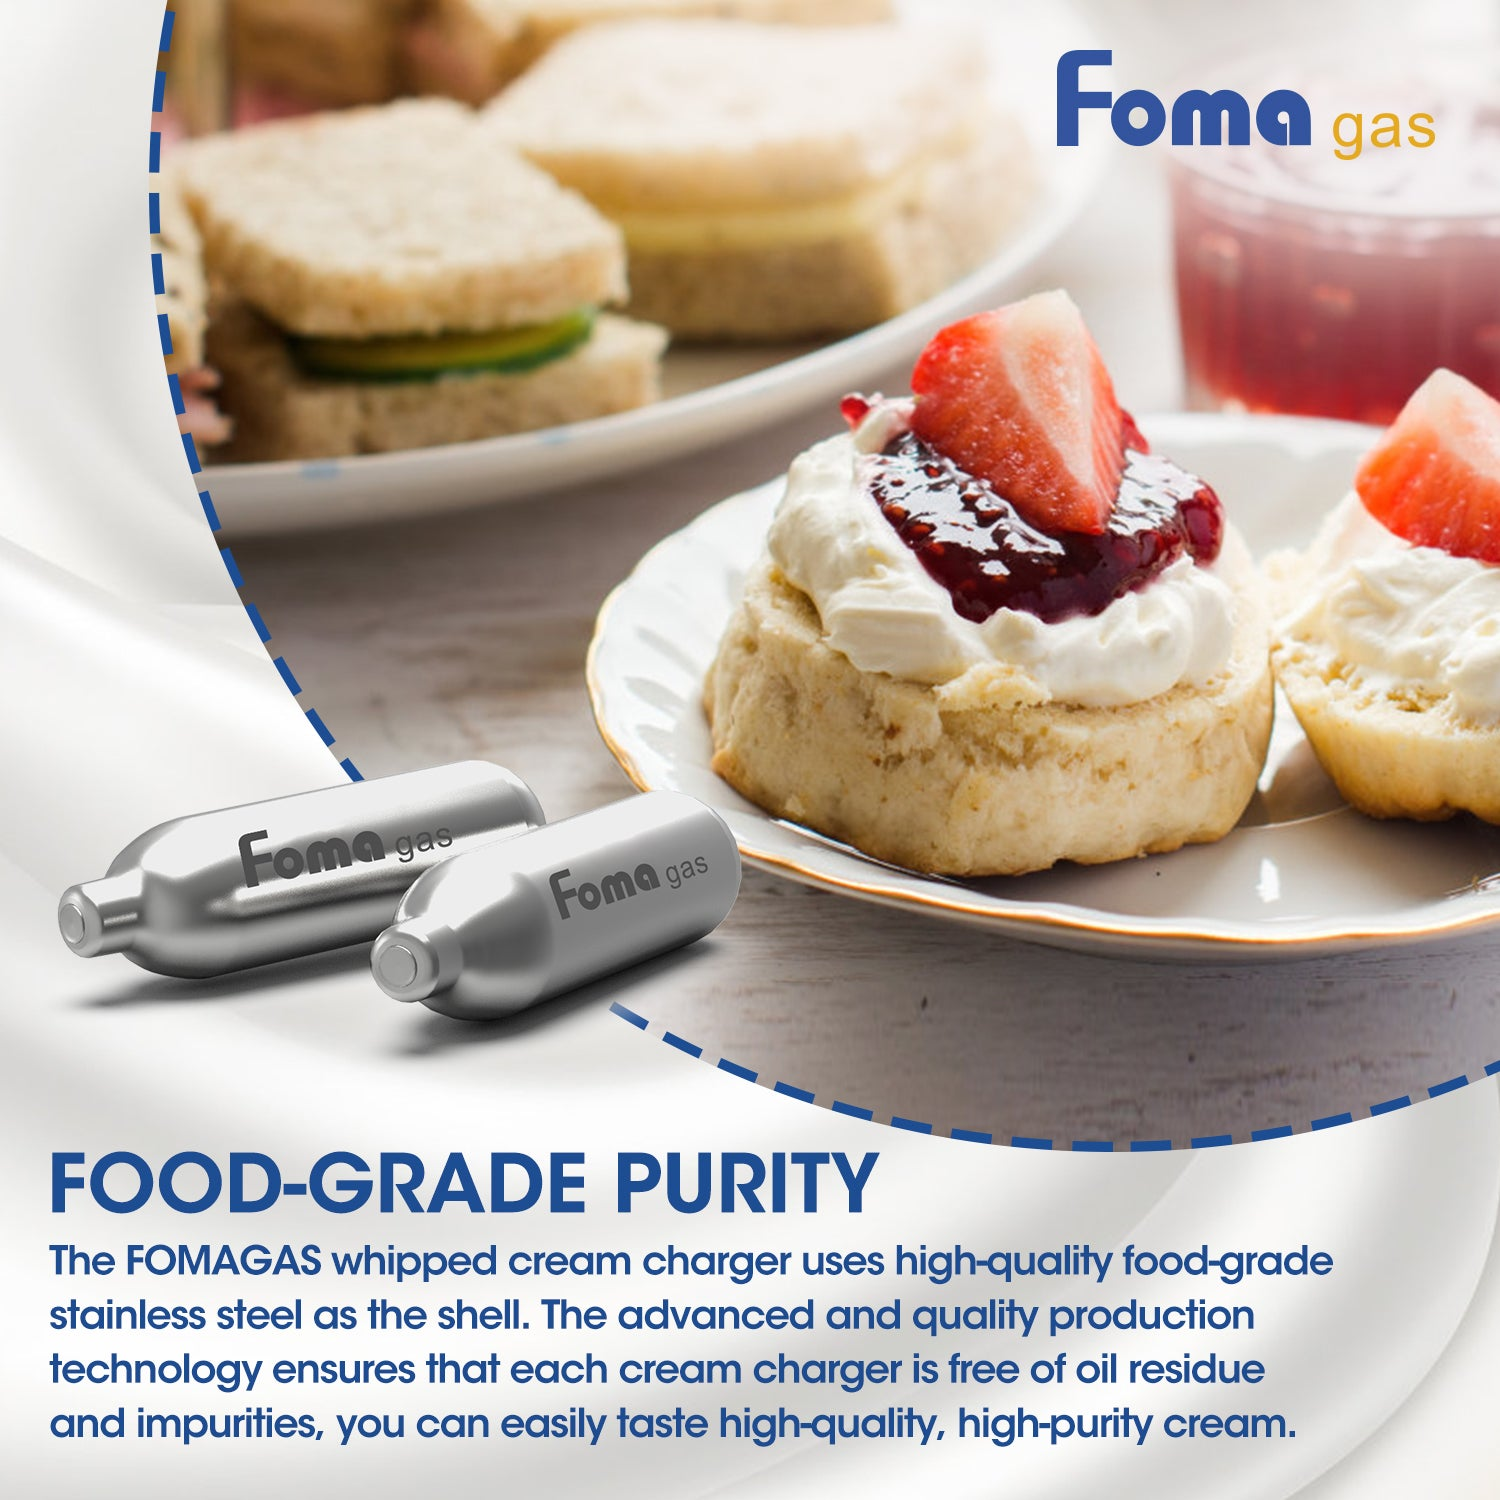 FomaGas 8g N2O Whipped Cream Chargers 48 Packs